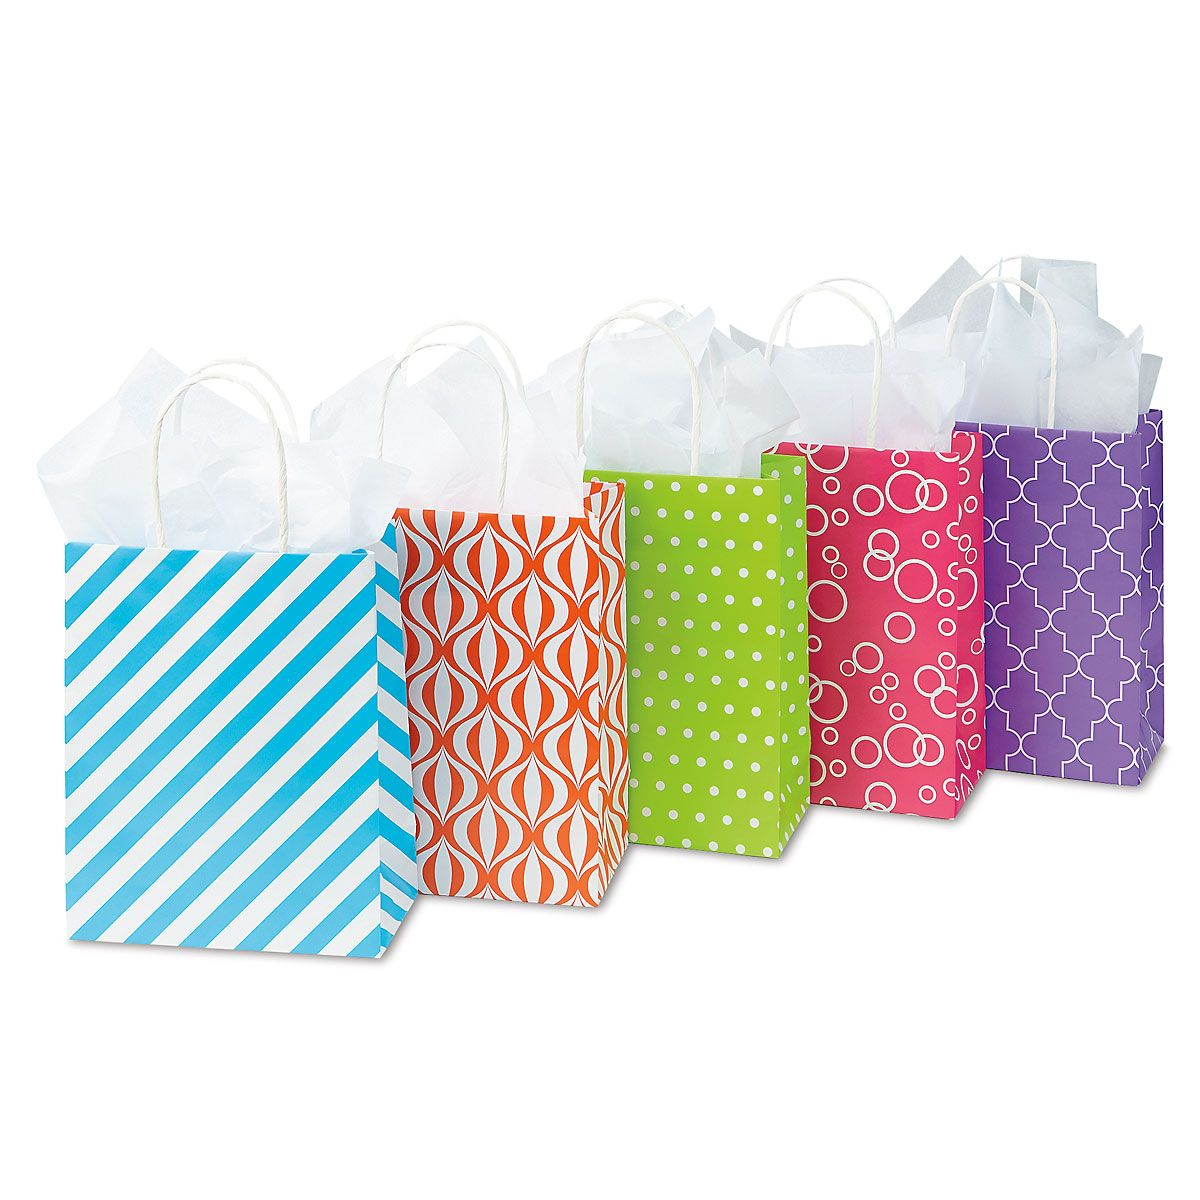 Spring Dots & Designs Gift Bags